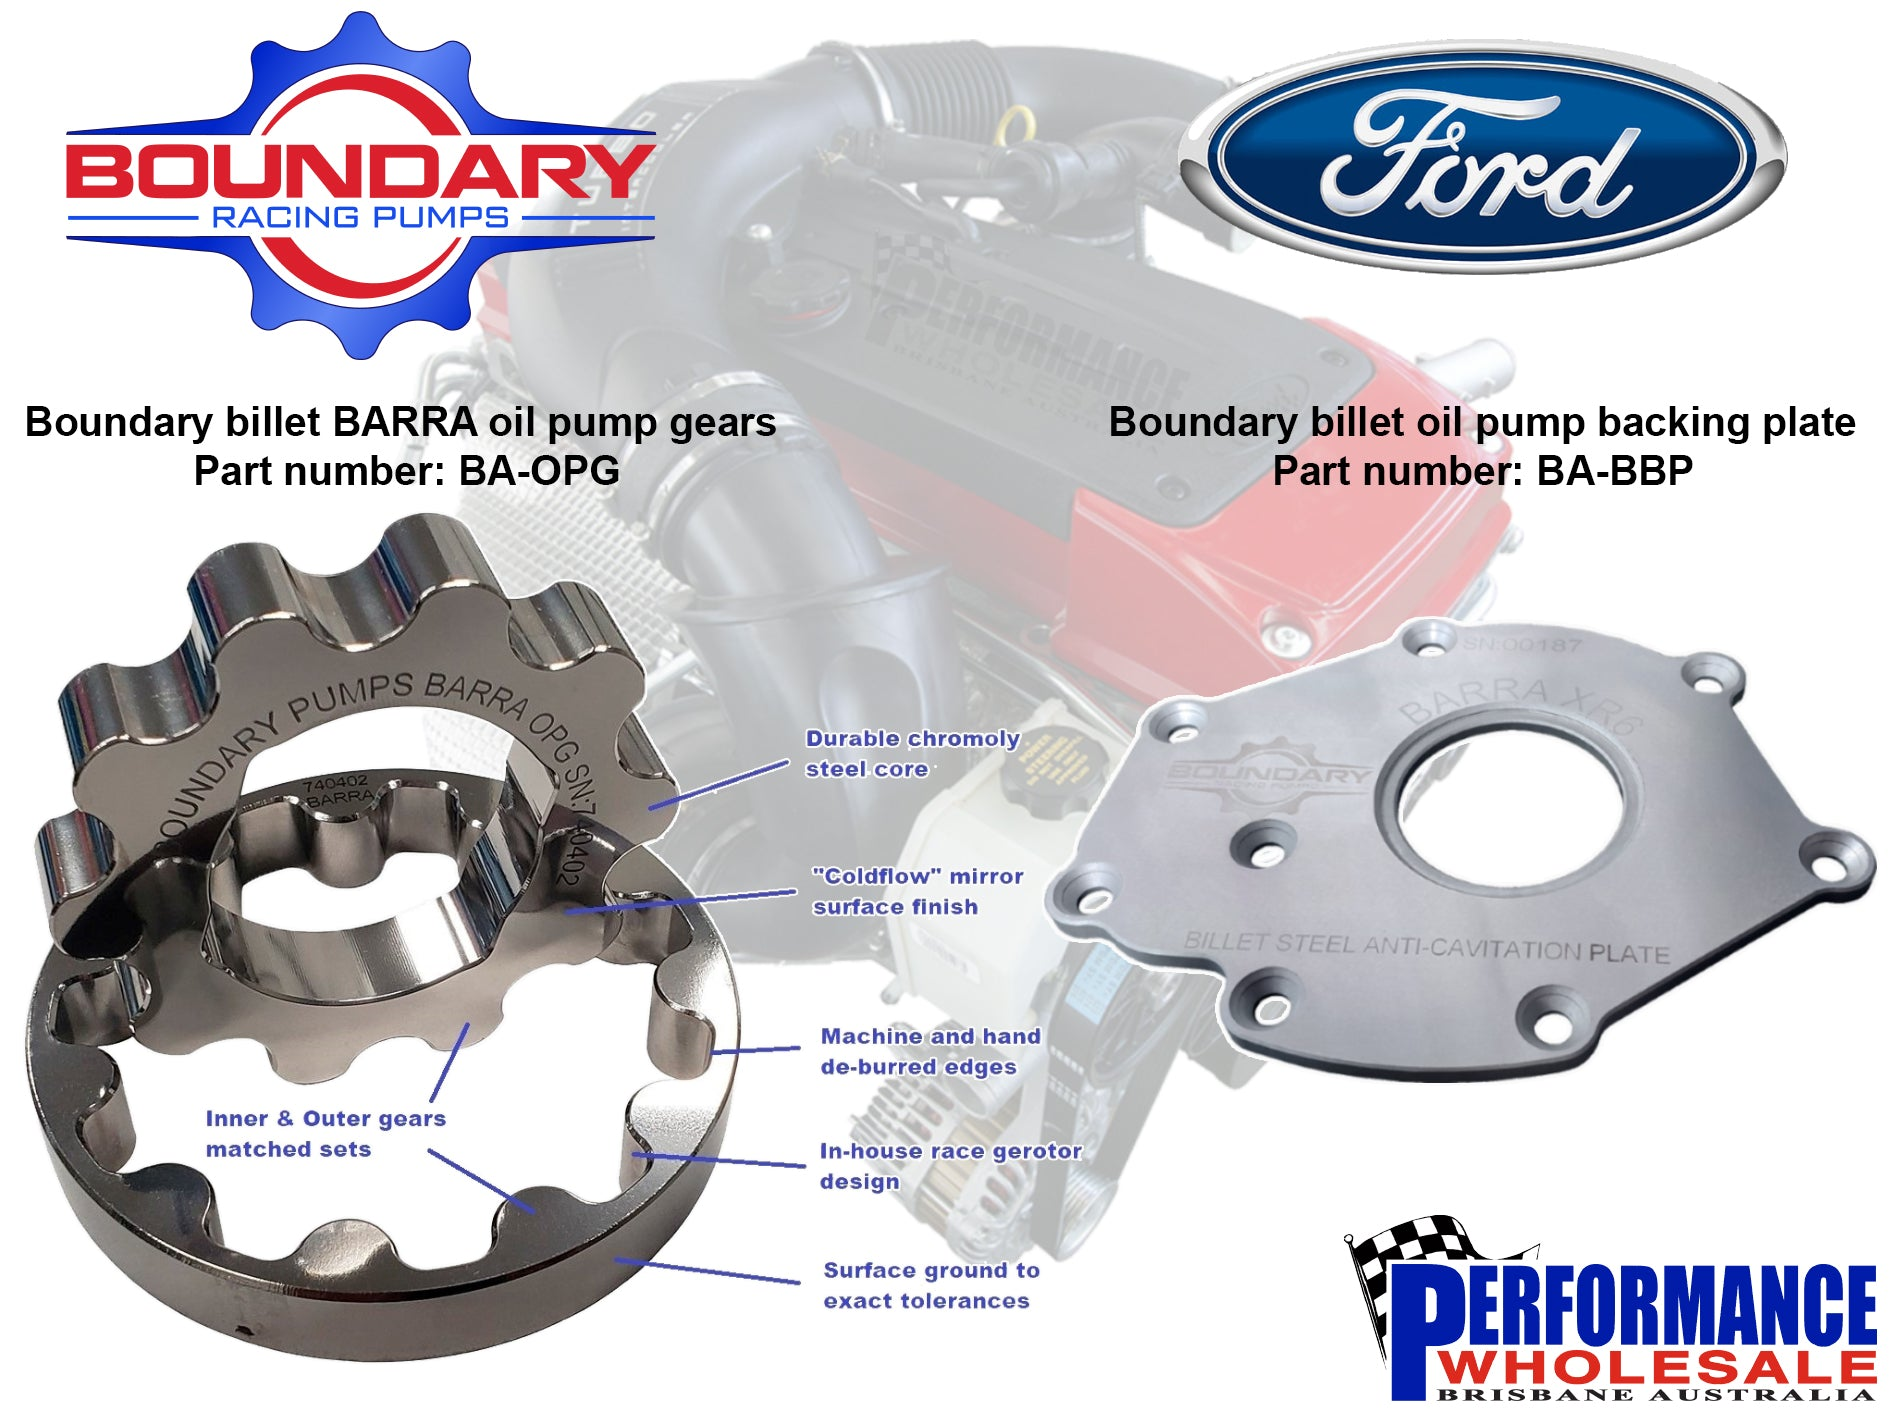 Boundary Barra oil pump gears and backing plate